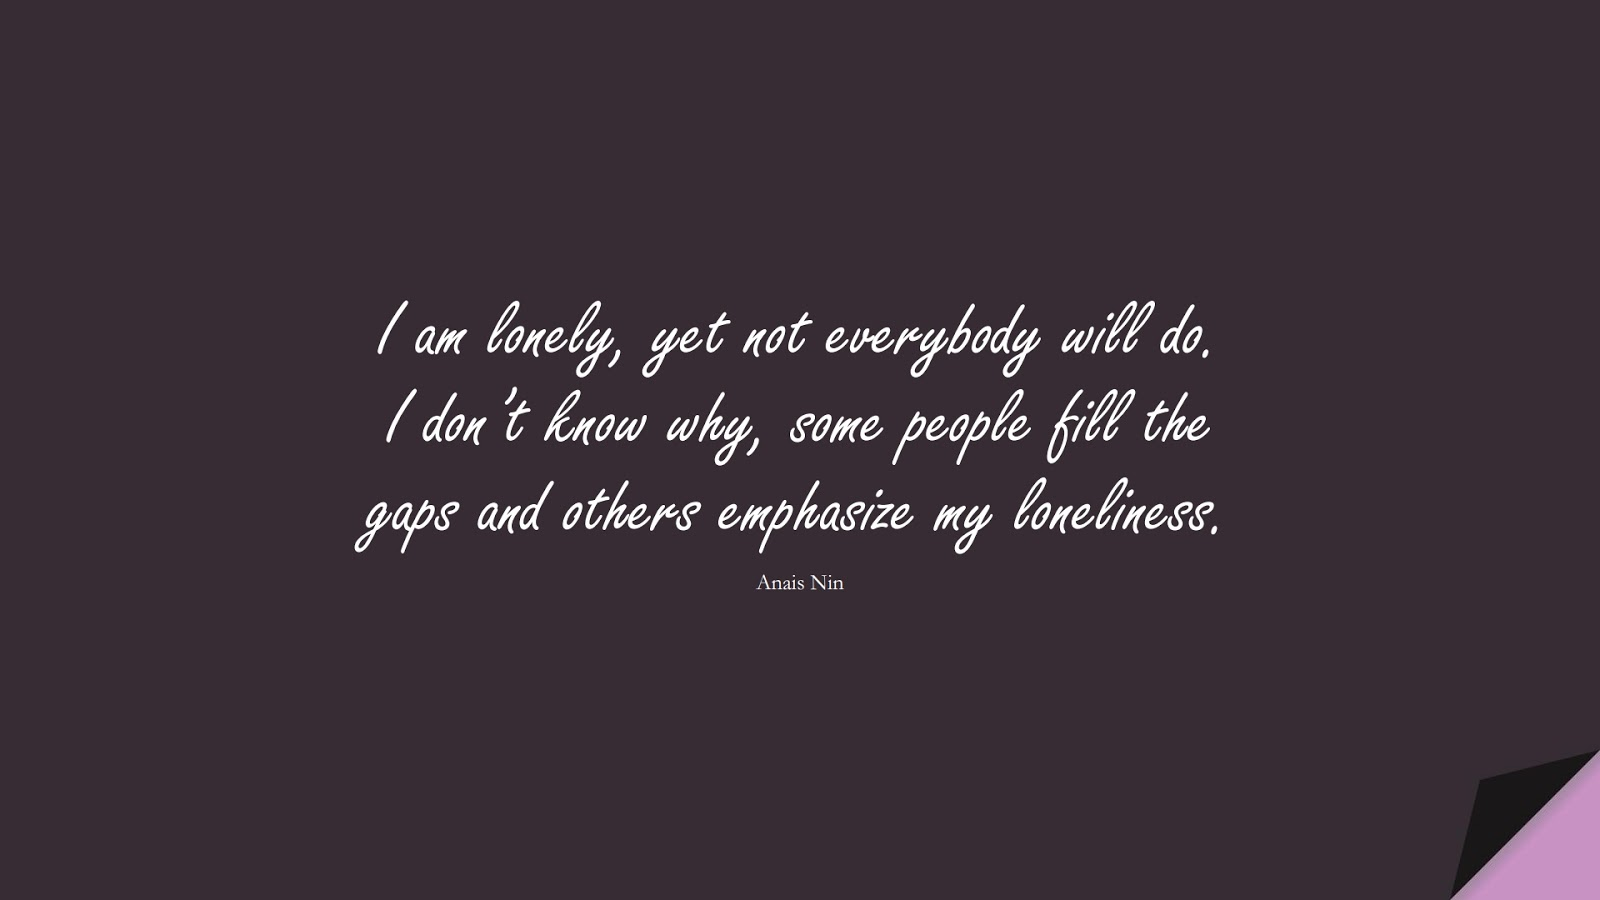 I am lonely, yet not everybody will do. I don't know why, some people fill the gaps and others emphasize my loneliness. (Anais Nin);  #PricelessQuotes